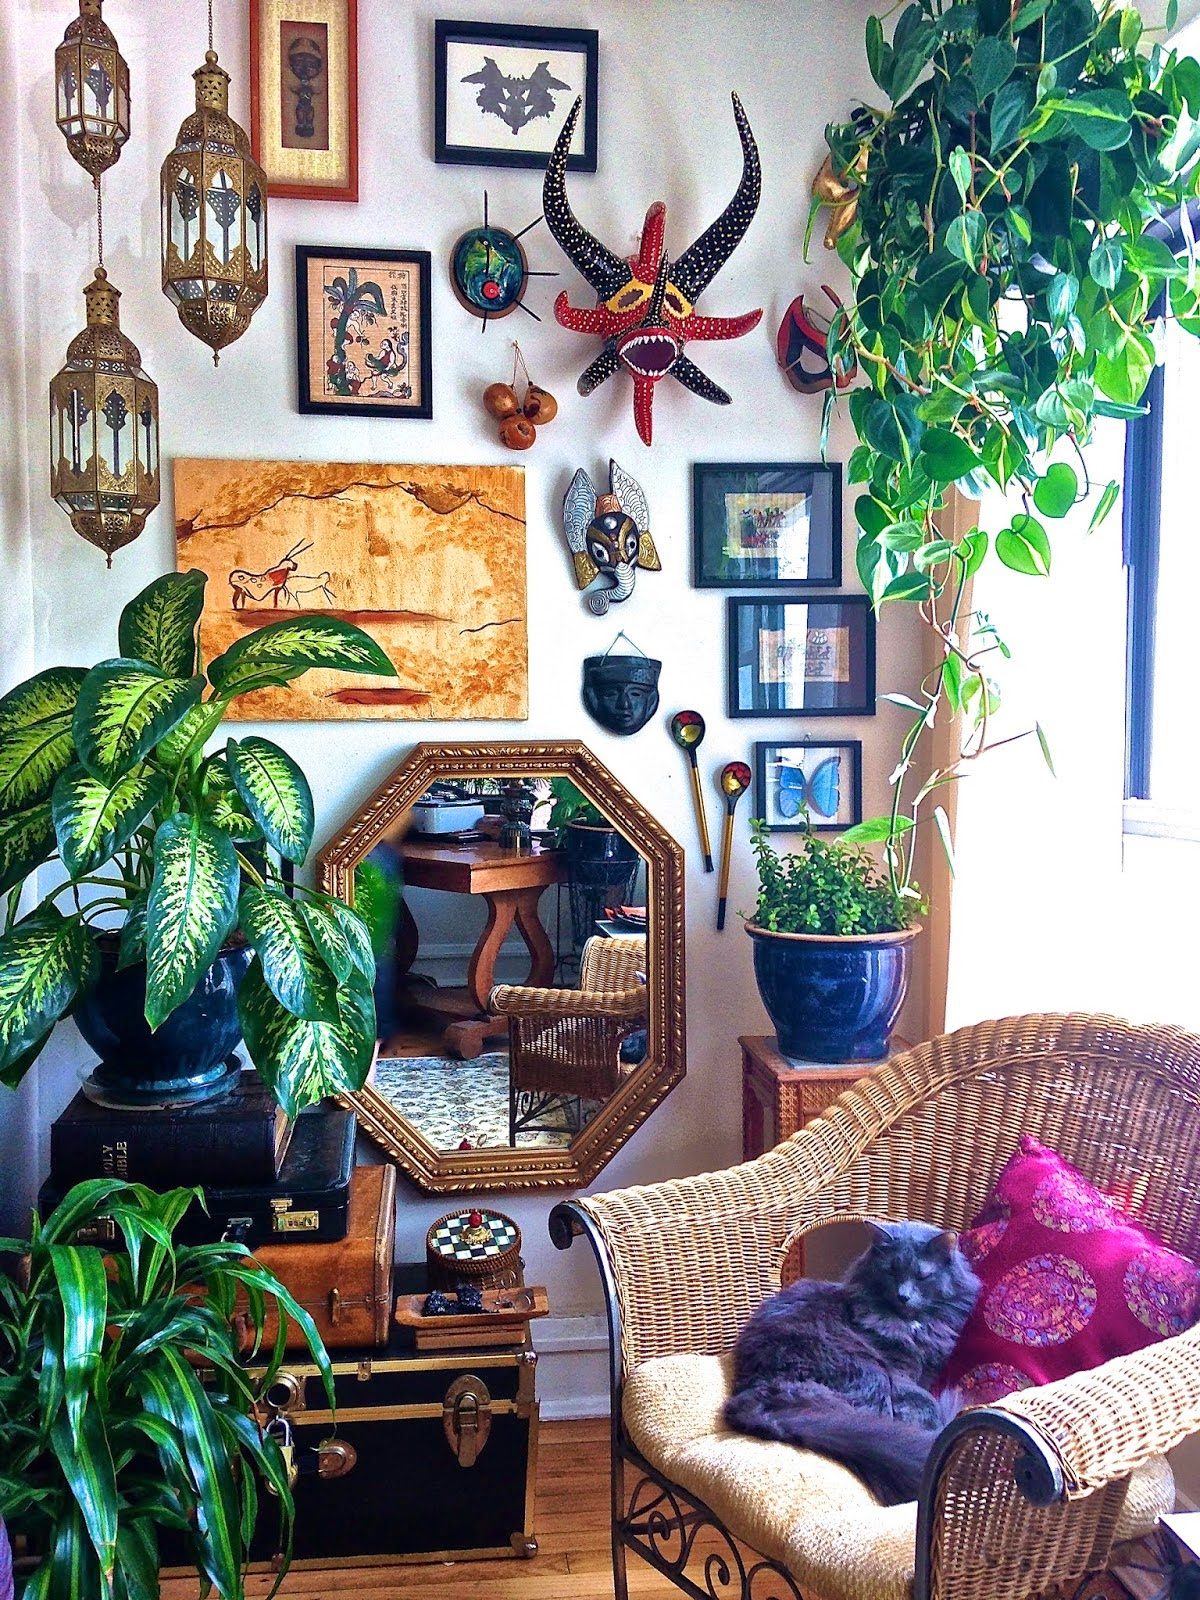 Gypsy Eclectic Home Furnishings: Moon To Moon: The Bohemian Home Of... Ms. Tungsten